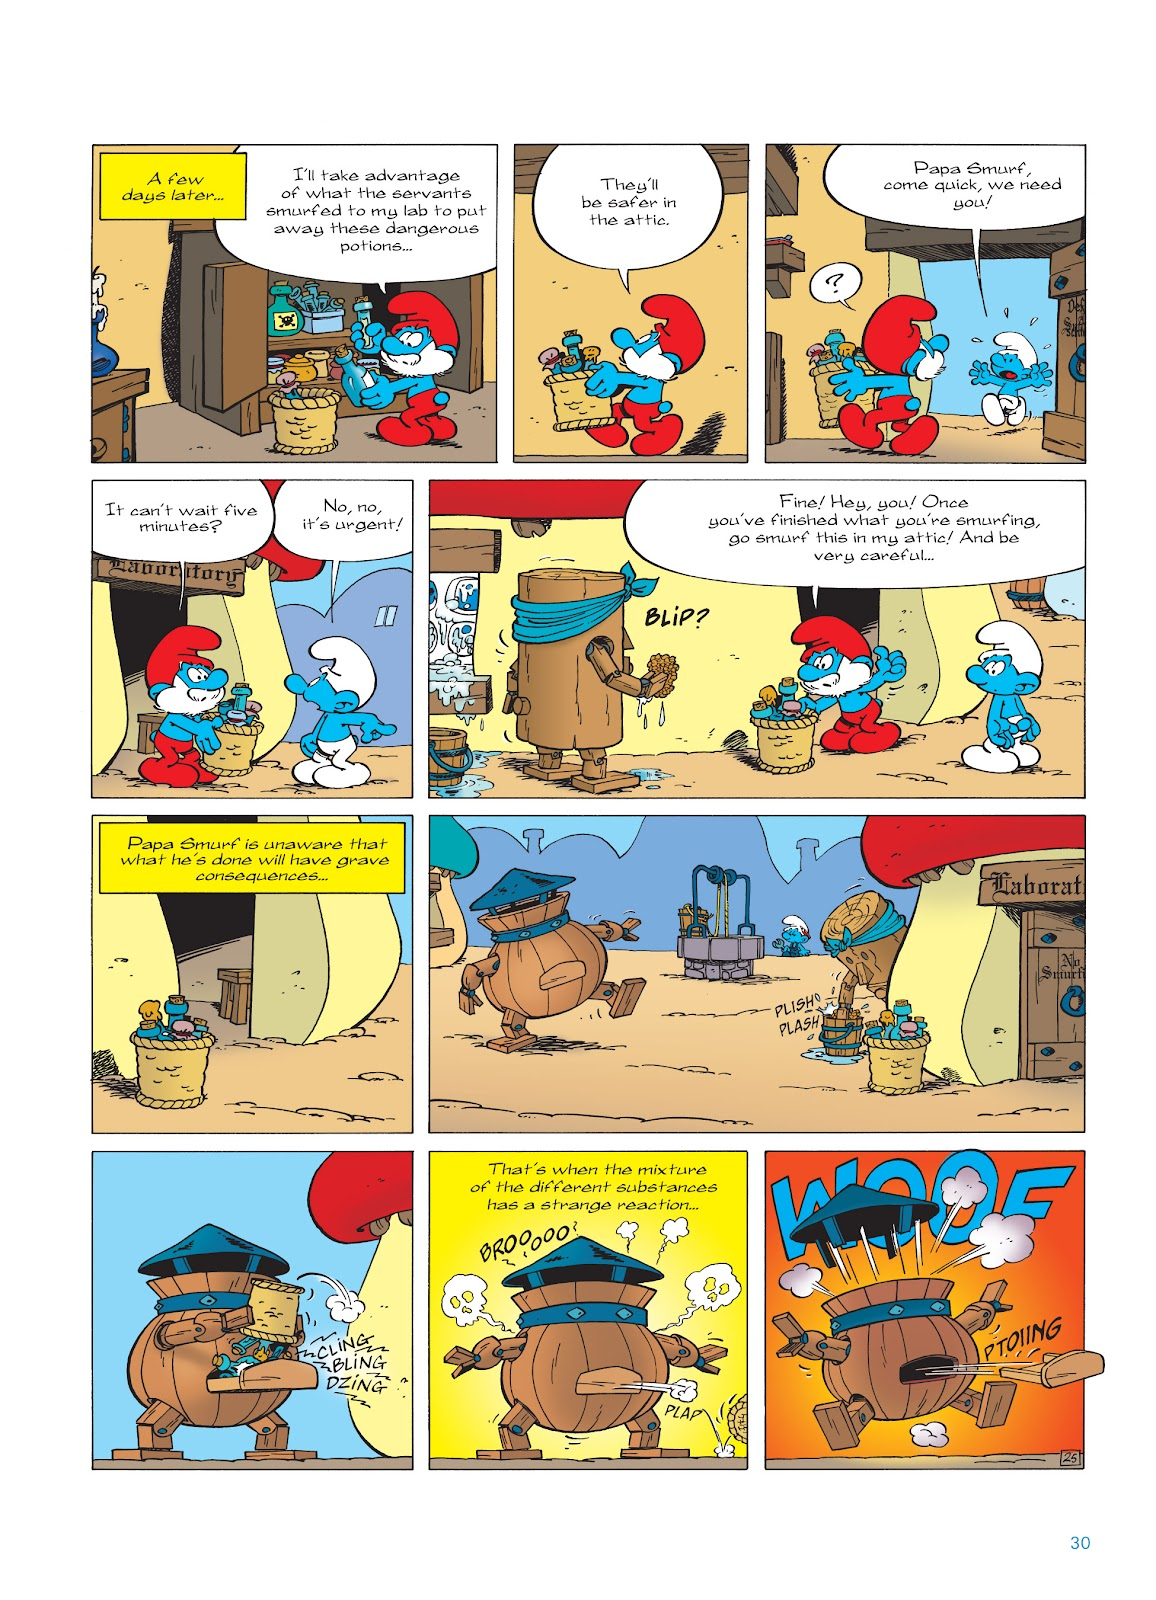 Read online The Smurfs comic -  Issue #23 - 30